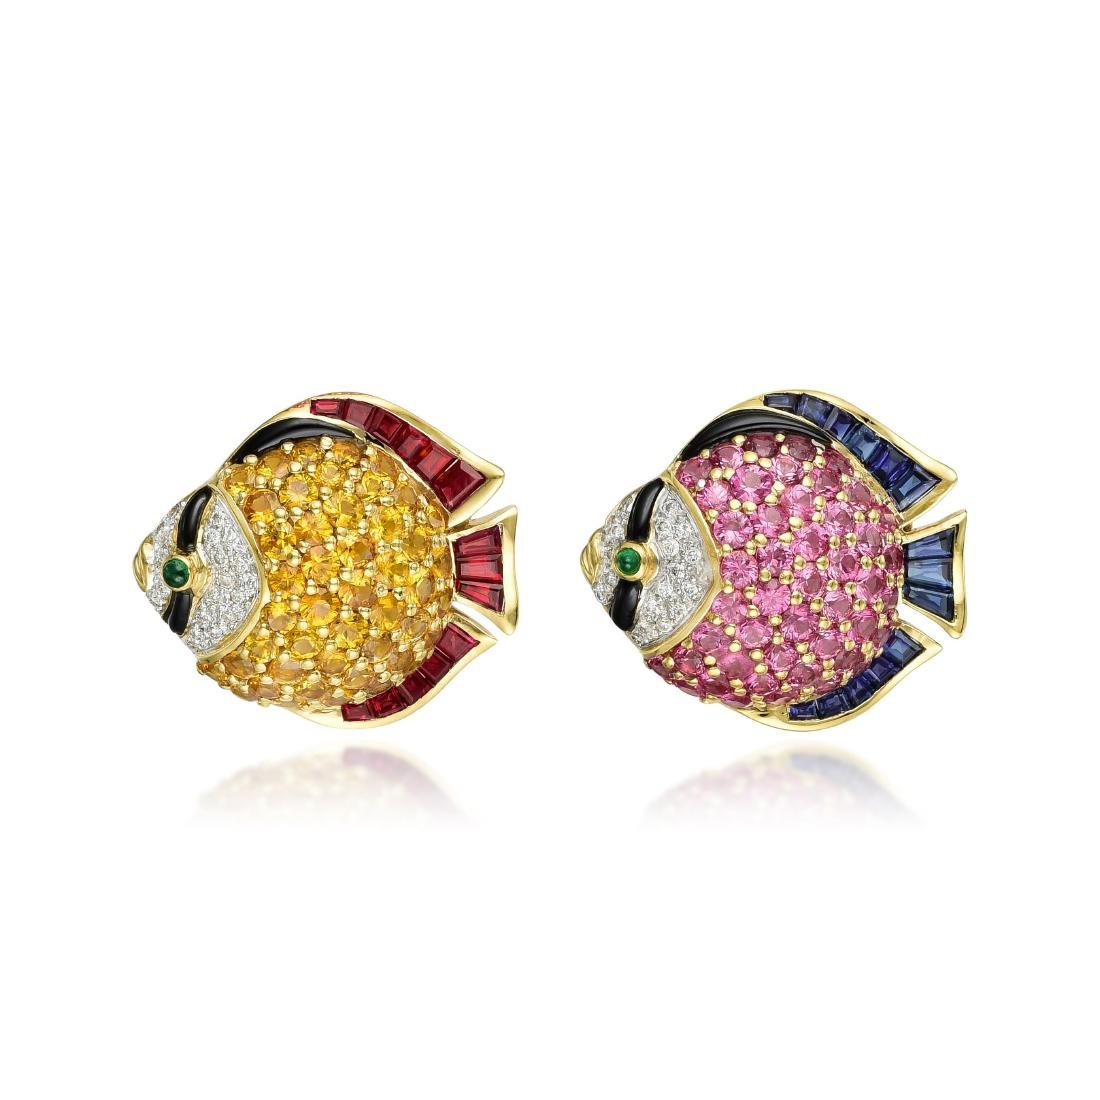 A Pair of 18K Gold Sapphire Ruby Diamond and Emerald